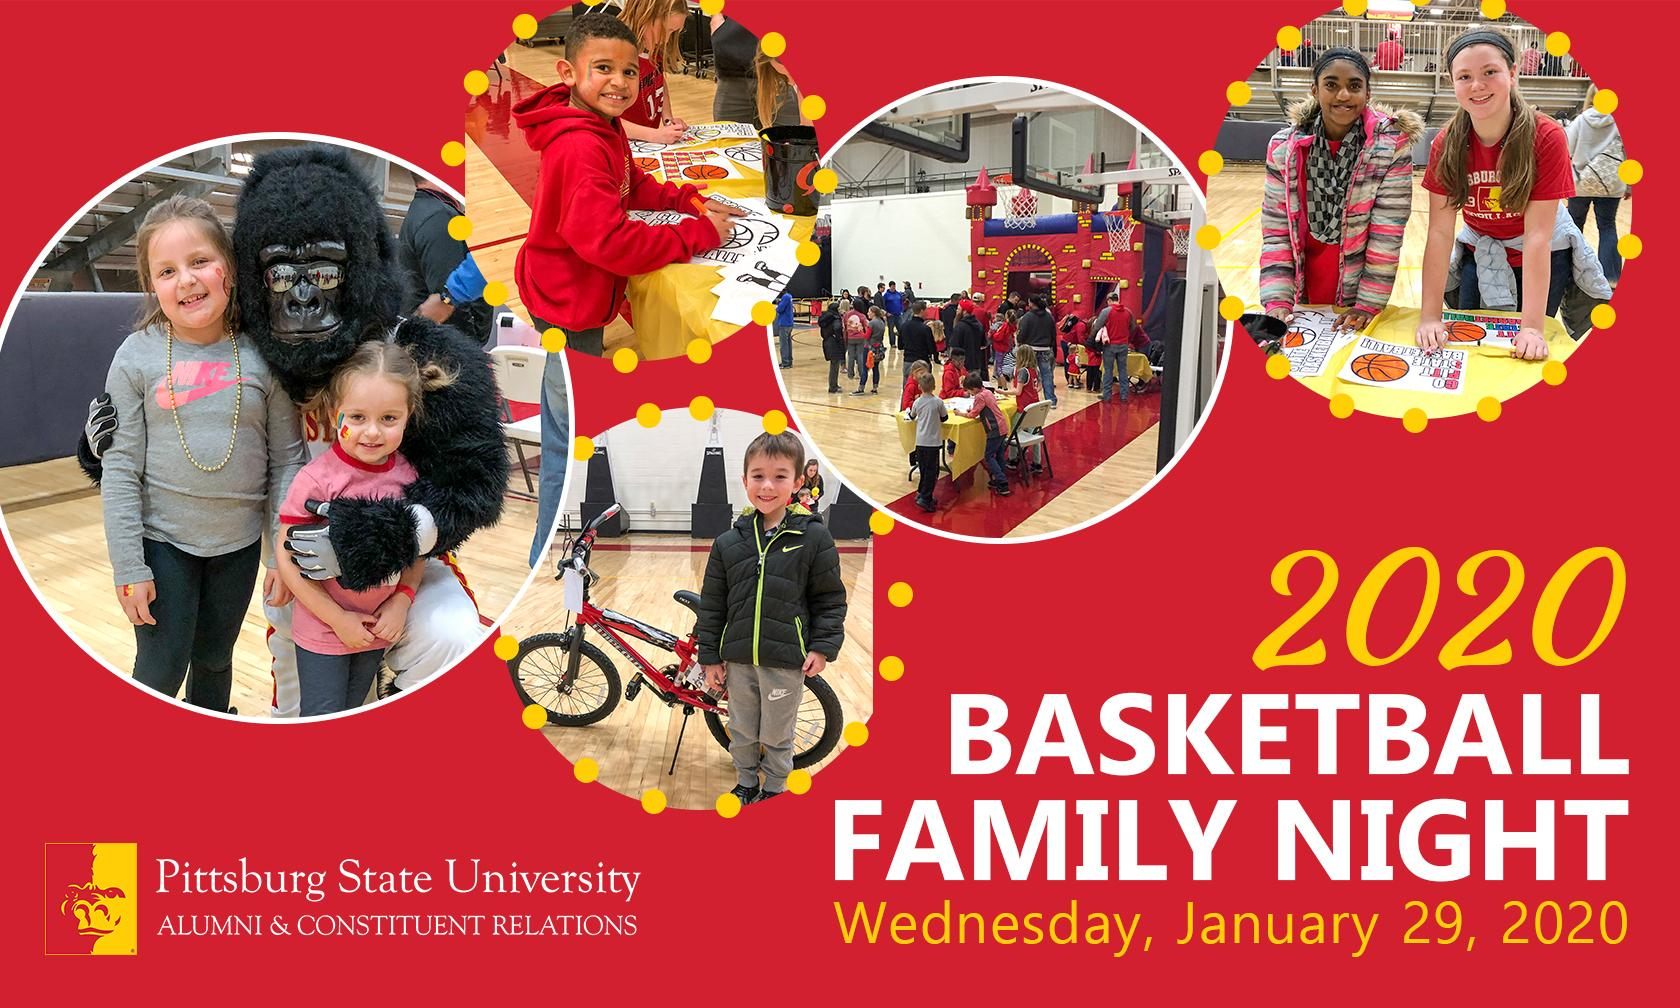 Basketball Family Night 2020